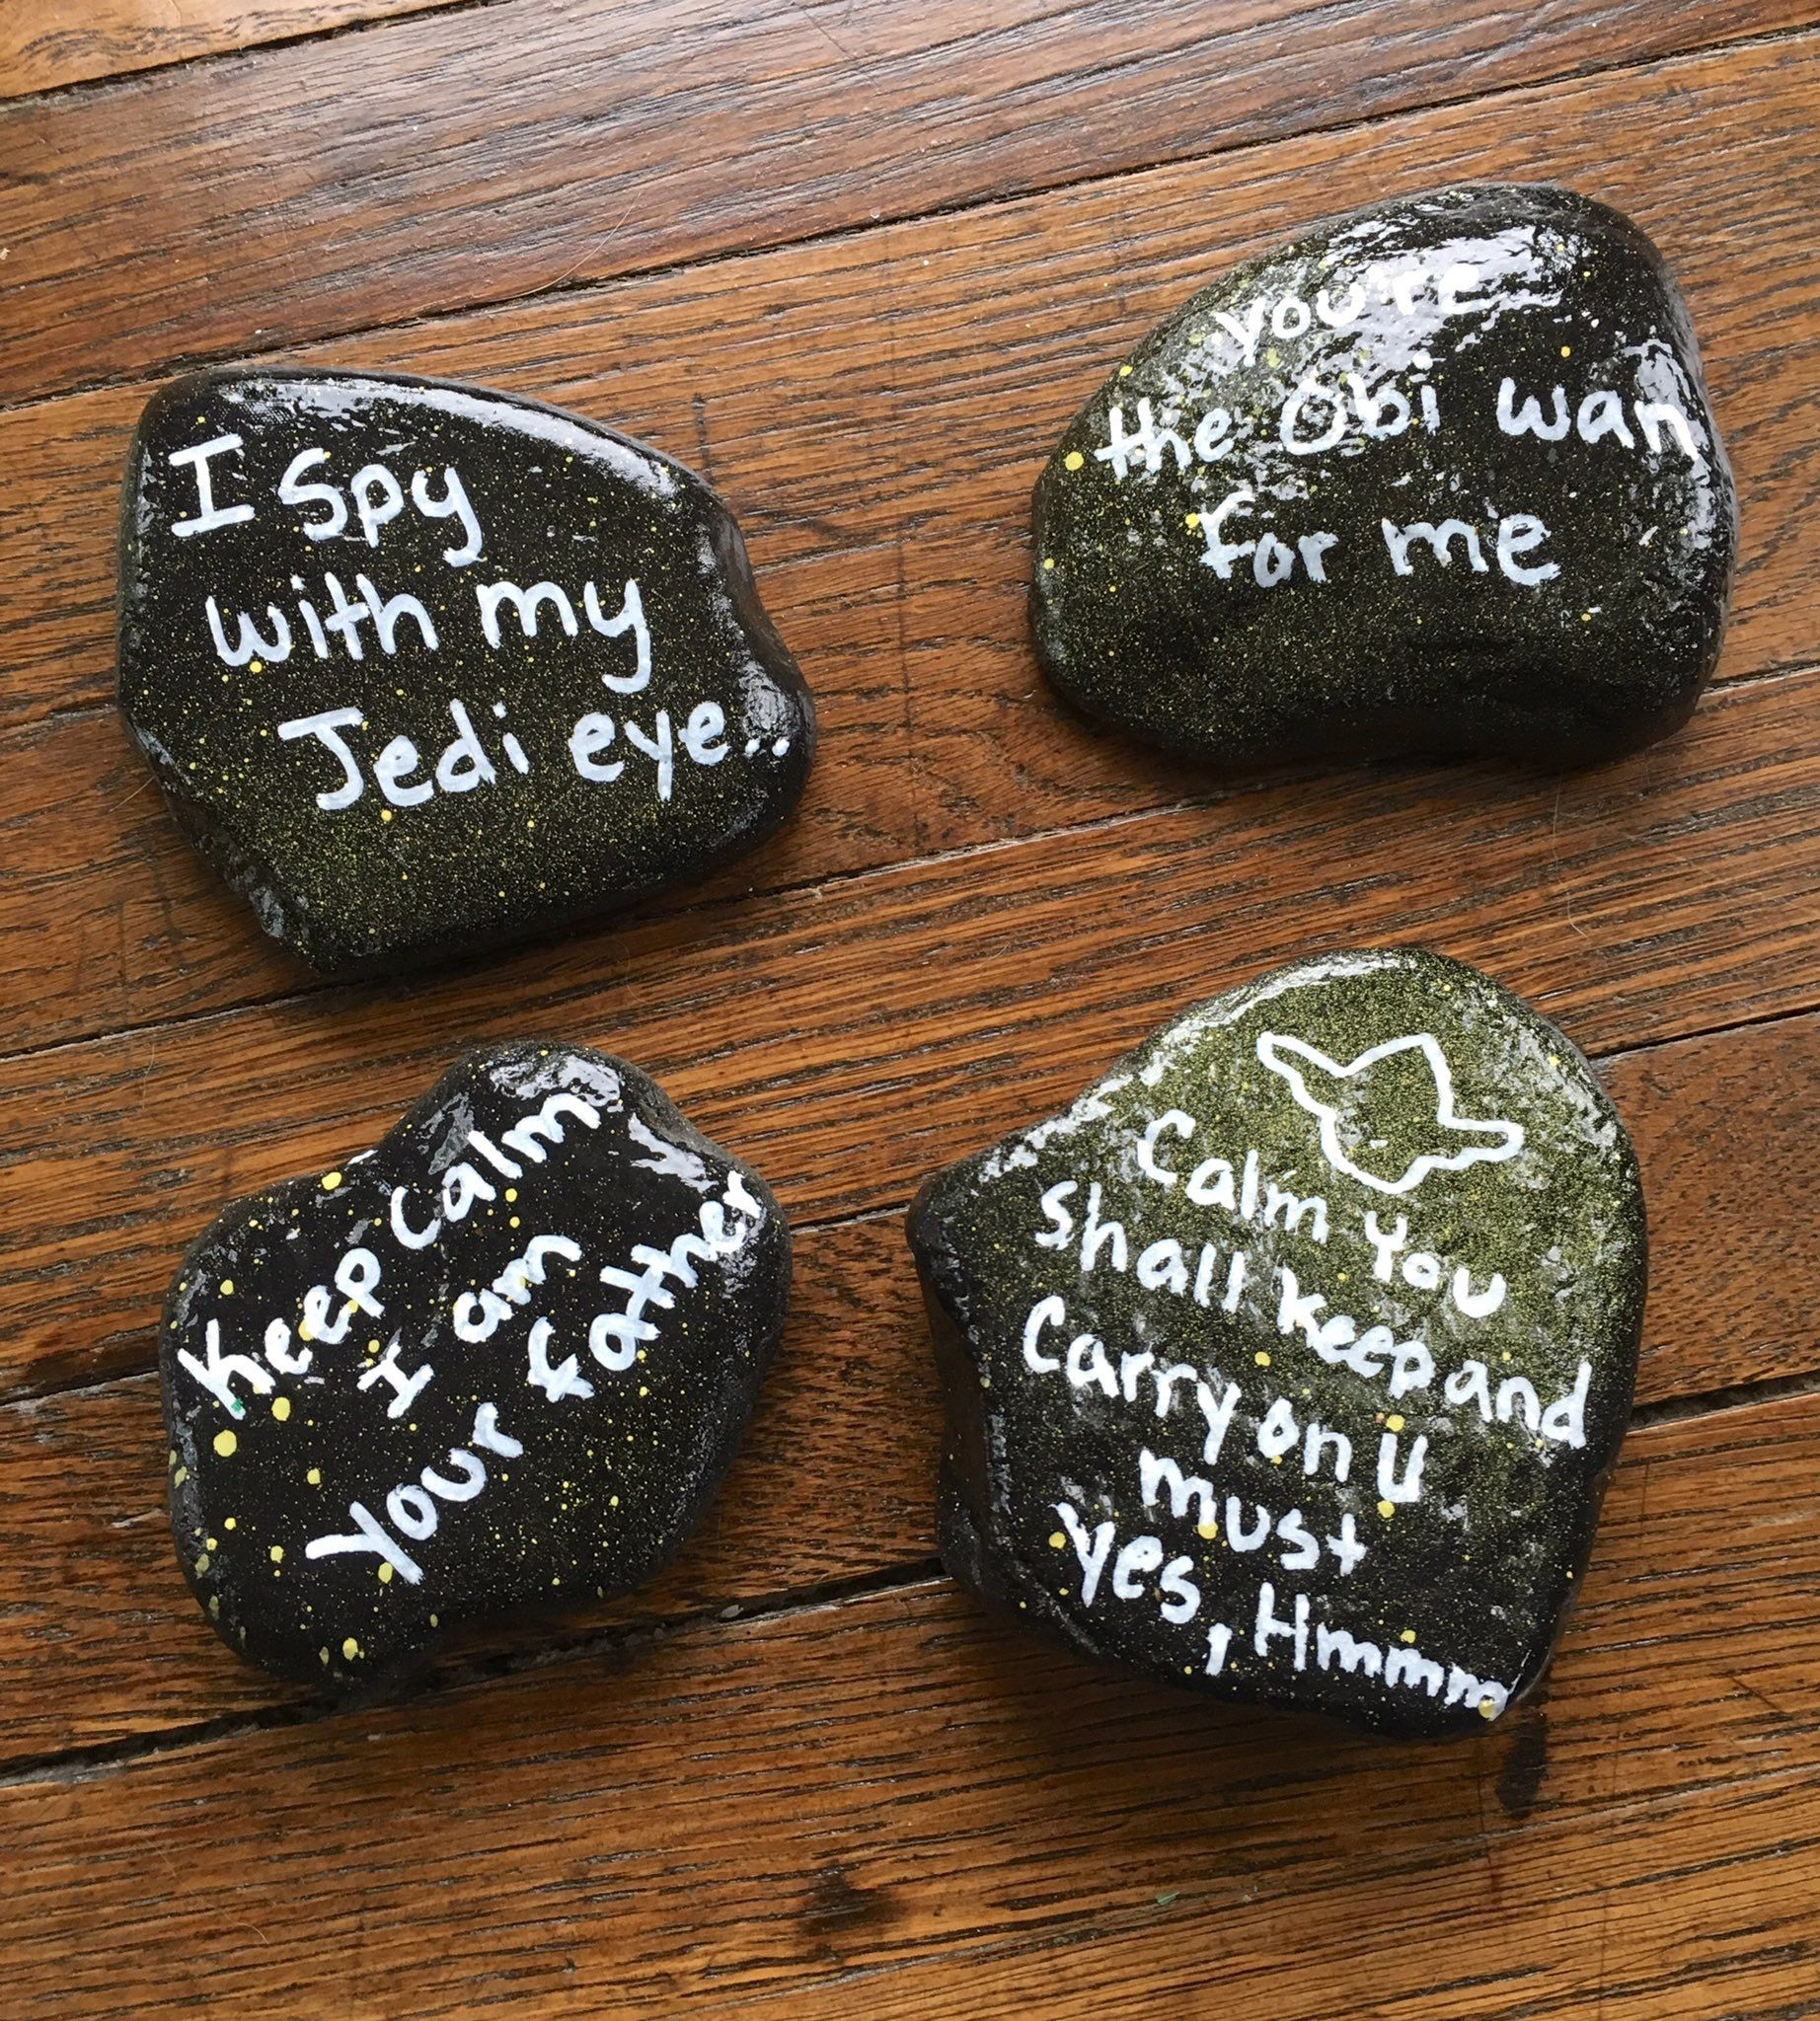 Painted Rock Star Wars May The Fourth Be With You Northeast Ohio Rocks Find Us